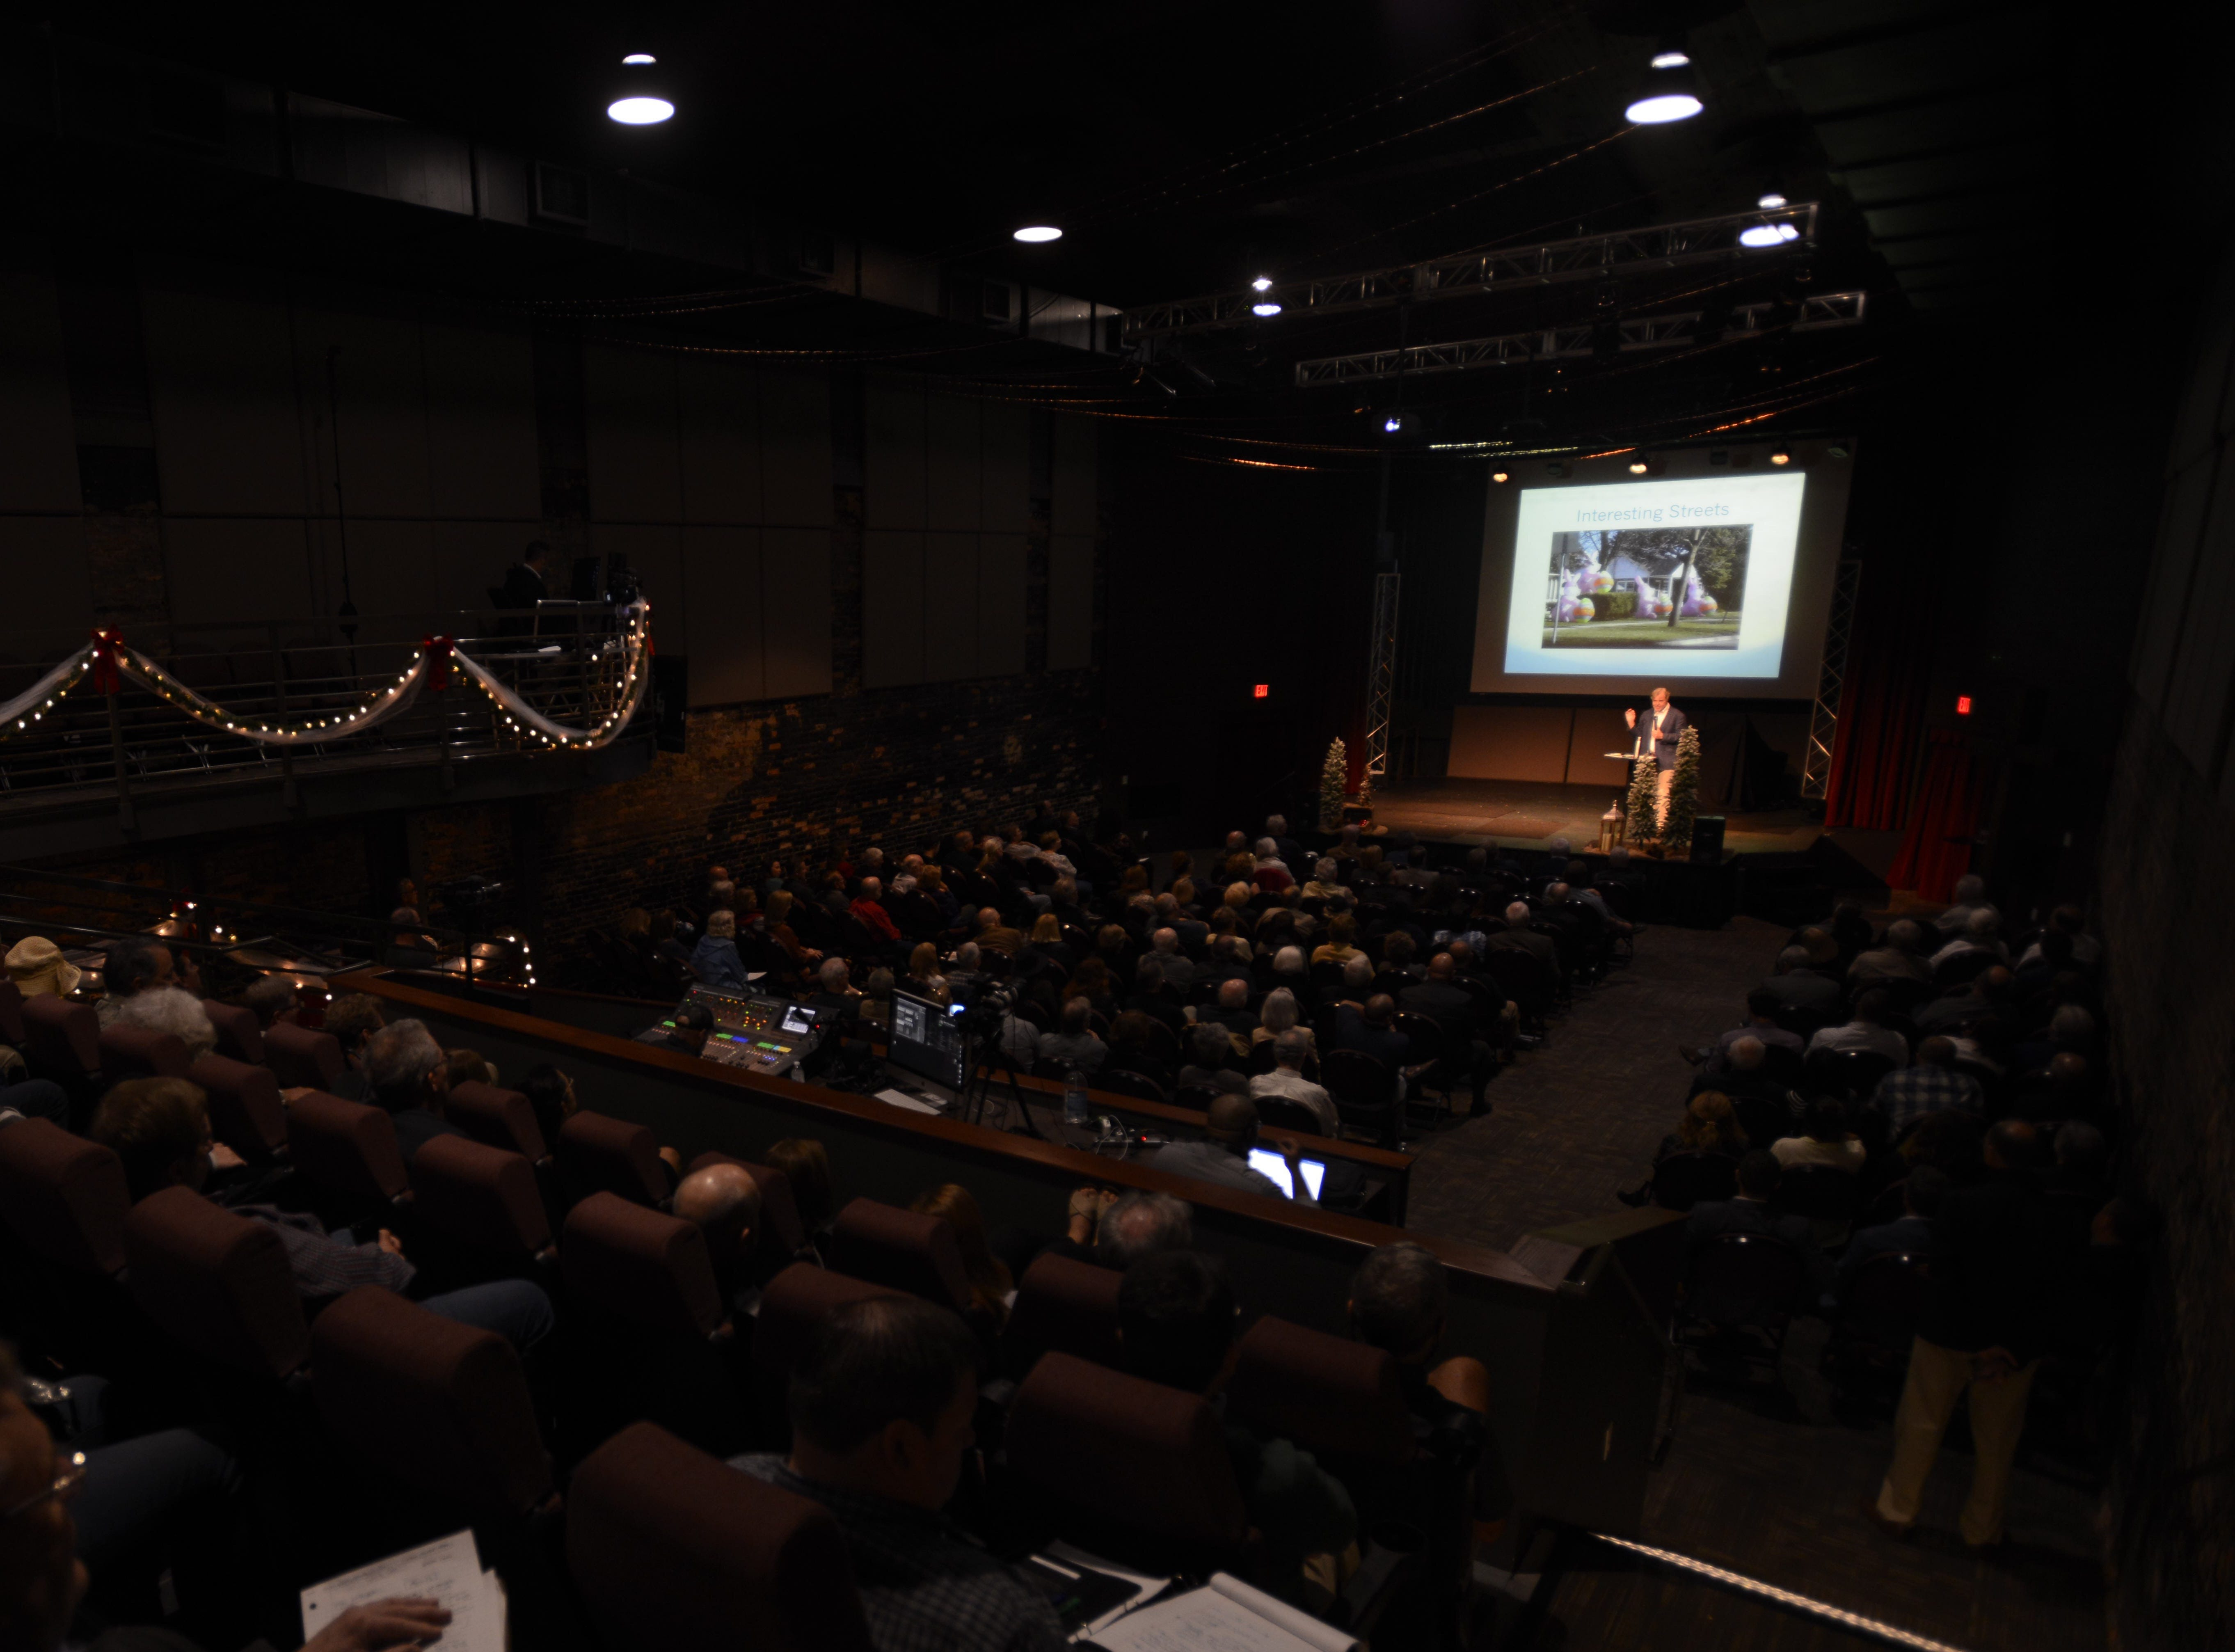 Hundreds of people pack into the REX Theatre in downtown Pensacola on Monday, Dec. 3, 2018, for a presentation by CivicCon speaker Jay Walljasper.